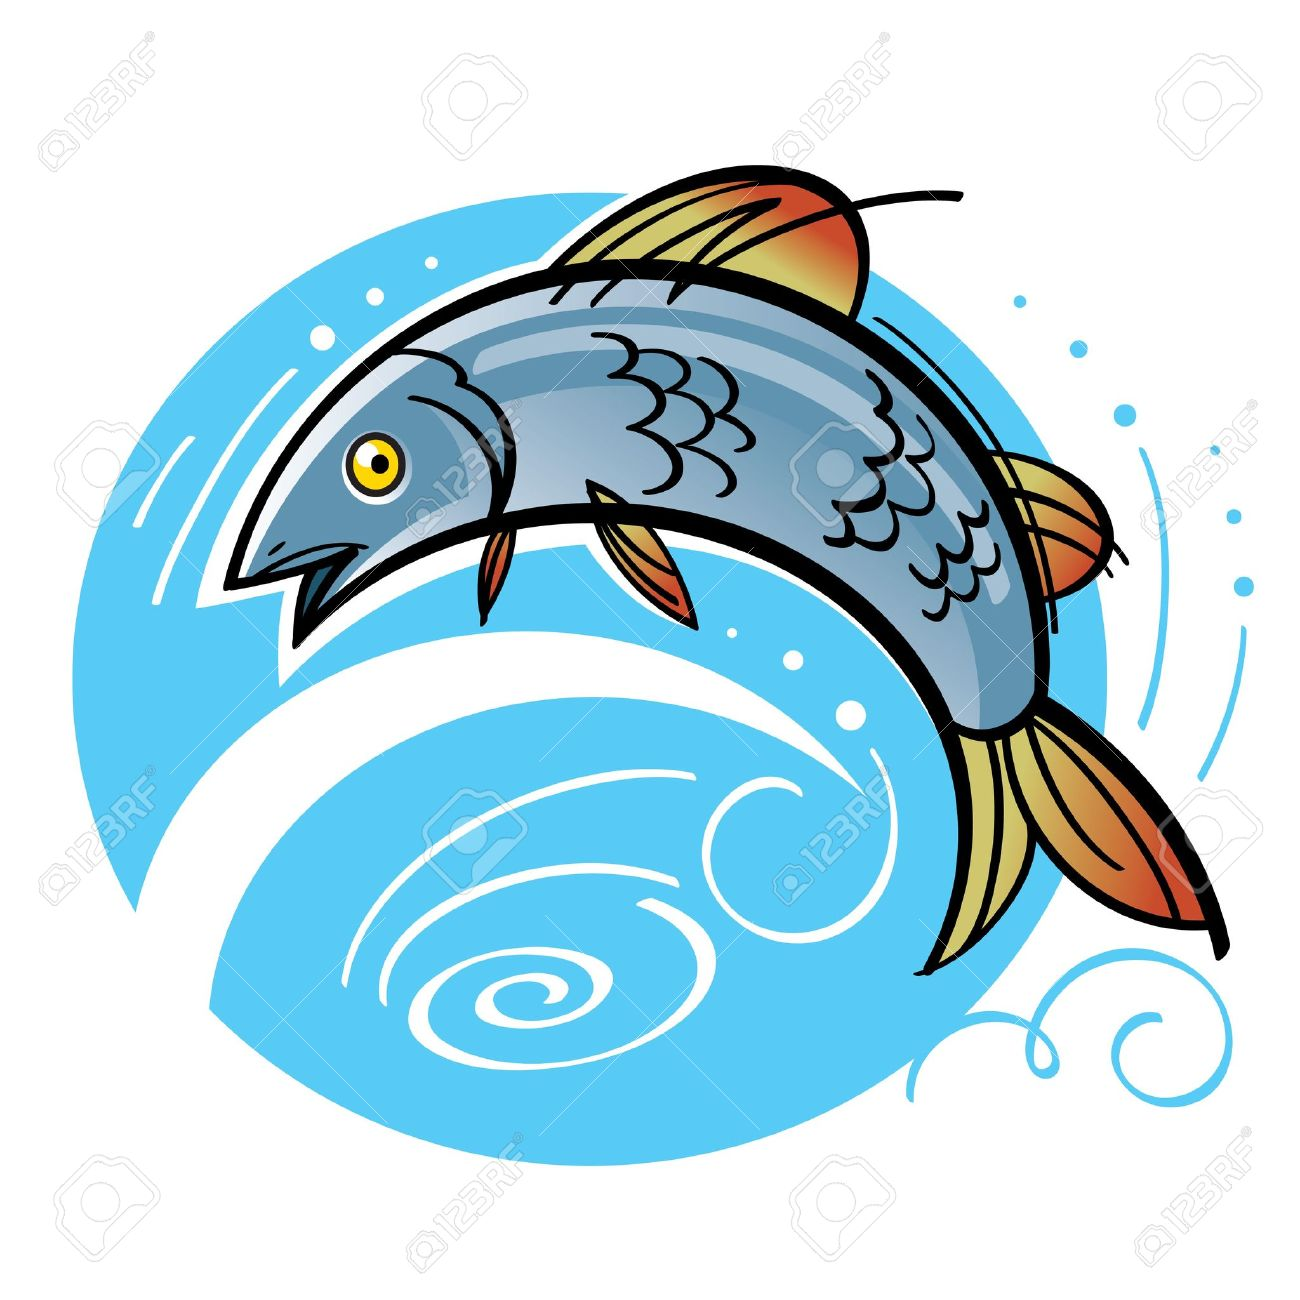 Trout clipart river fish. Collection of free download